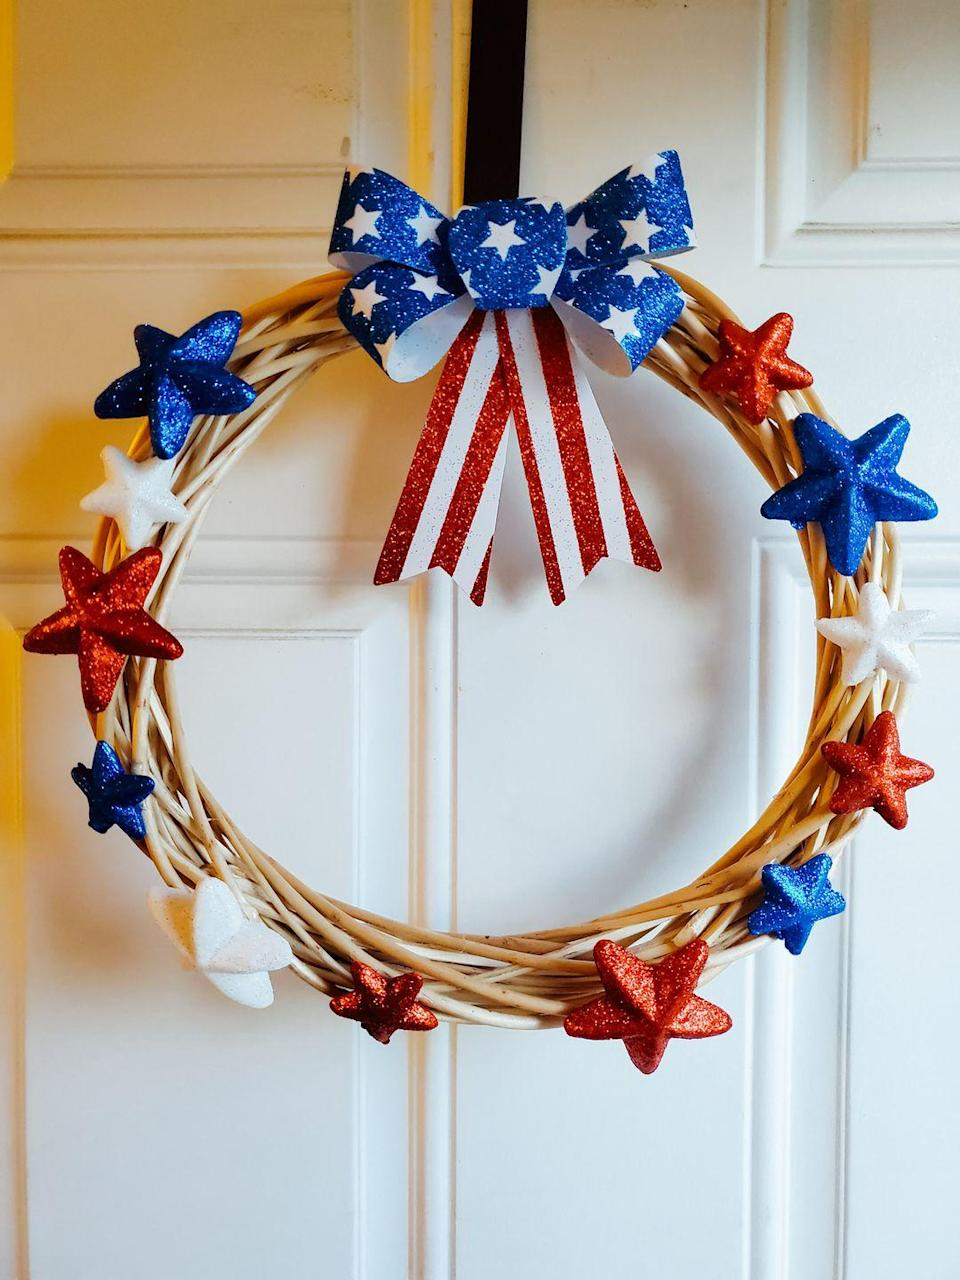 """<p>Add some sparkle to the front door with this willow wreath, hot glued with glittering red, white, and blue stars and topped off with a shimmery patriotic ribbon. </p><p><strong>Get the tutorial at <a href=""""https://goodlifedetroit.com/diy-fourth-of-july-wreaths-craft-idea/"""" rel=""""nofollow noopener"""" target=""""_blank"""" data-ylk=""""slk:Good Life Detroit"""" class=""""link rapid-noclick-resp"""">Good Life Detroit</a>. </strong></p><p><strong><a class=""""link rapid-noclick-resp"""" href=""""https://www.amazon.com/Patriotic-Foam-Glitter-Scatters-Fourth/dp/B07S2YT8RJ/ref=sr_1_2?dchild=1&keywords=foam+scatter&qid=1622038415&sr=8-2&tag=syn-yahoo-20&ascsubtag=%5Bartid%7C10050.g.4464%5Bsrc%7Cyahoo-us"""" rel=""""nofollow noopener"""" target=""""_blank"""" data-ylk=""""slk:SHOP FOAM GLITTER STARS"""">SHOP FOAM GLITTER STARS </a><br></strong></p>"""